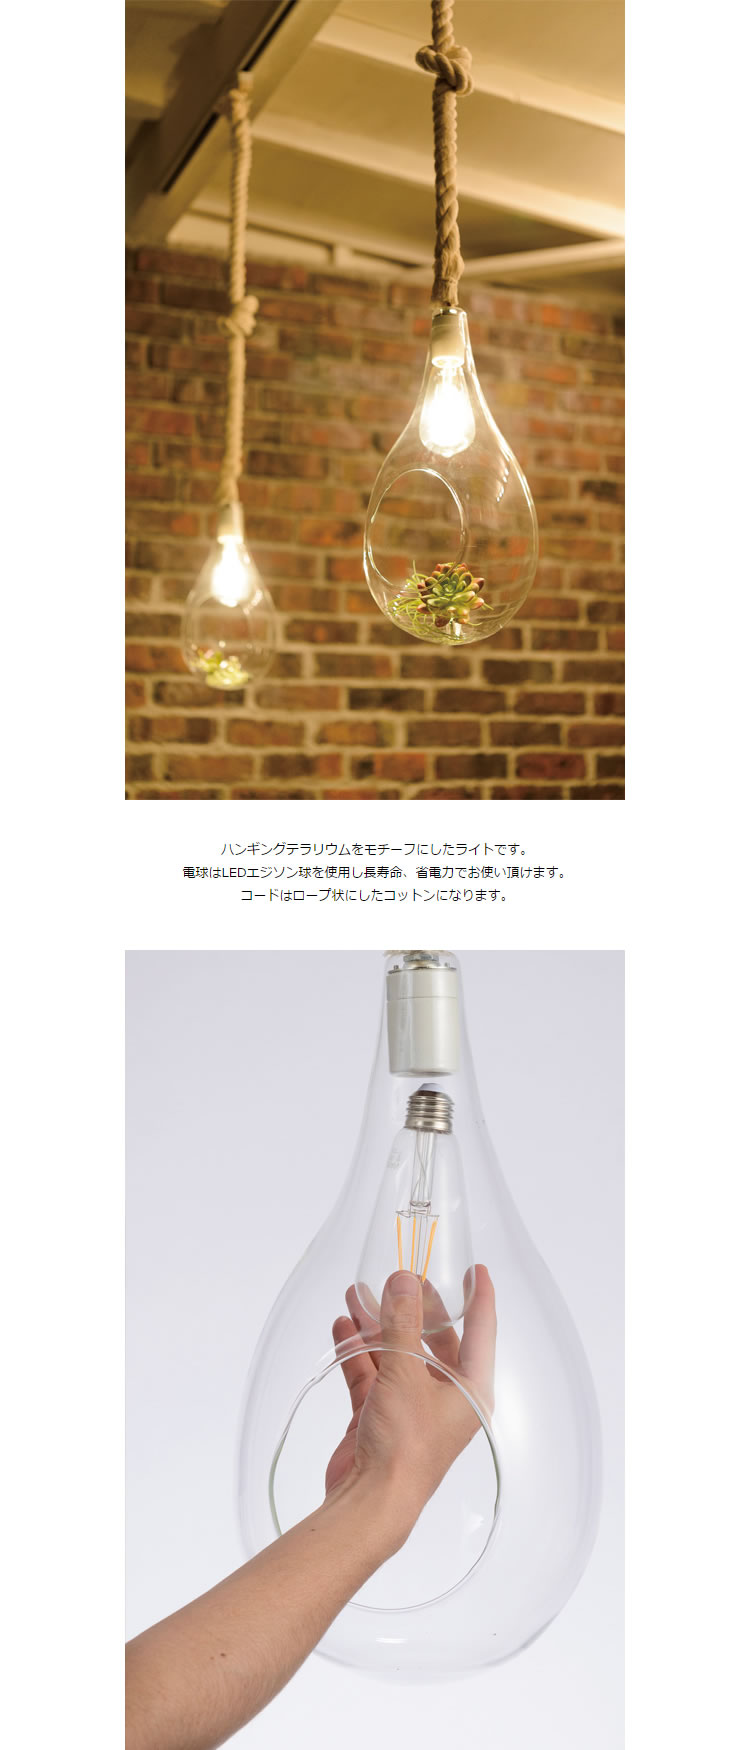 Another garden BOTANIC HANGING LIGHT ボタニックハンギングライト [L]